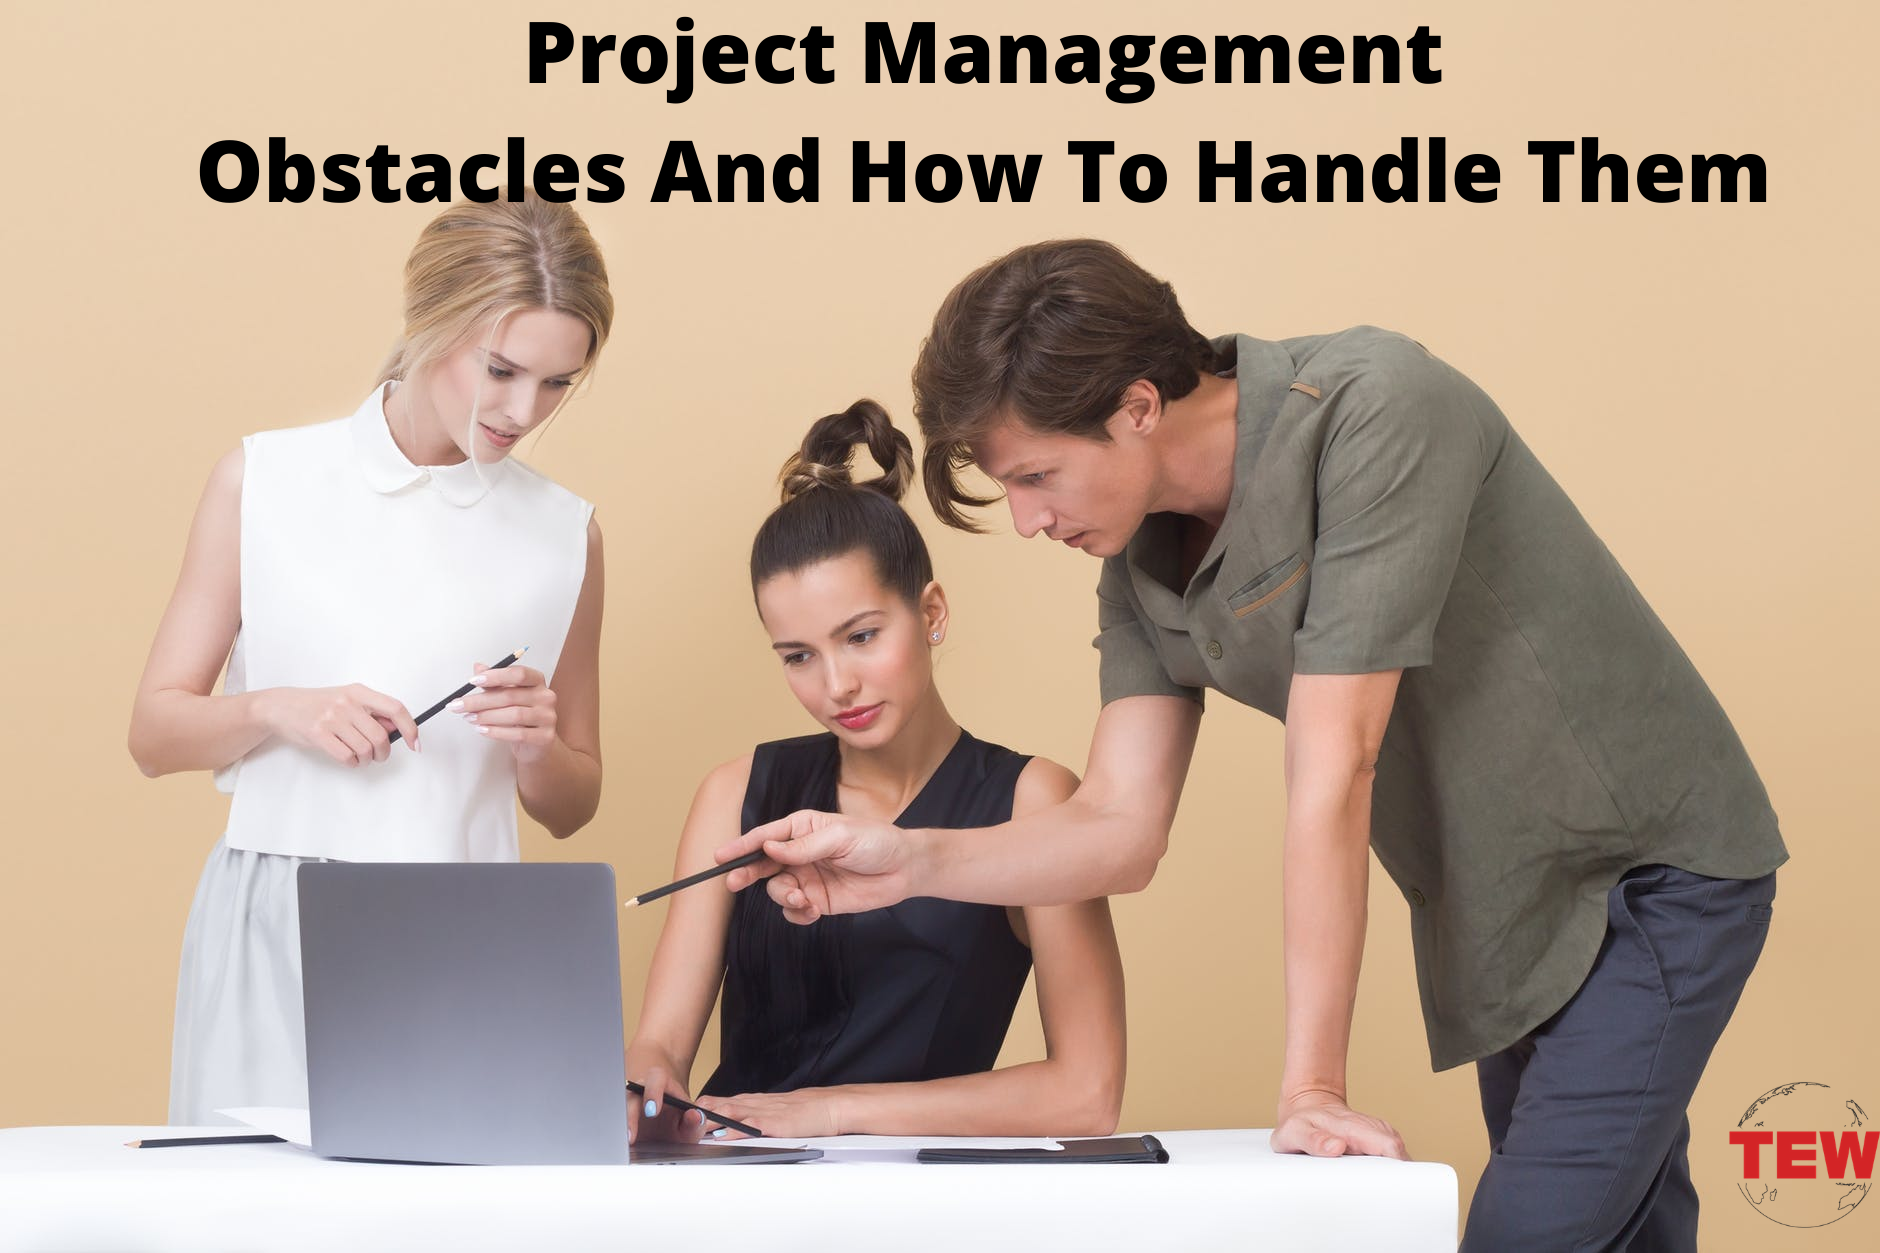 Project Management Obstacles And How To Handle Them